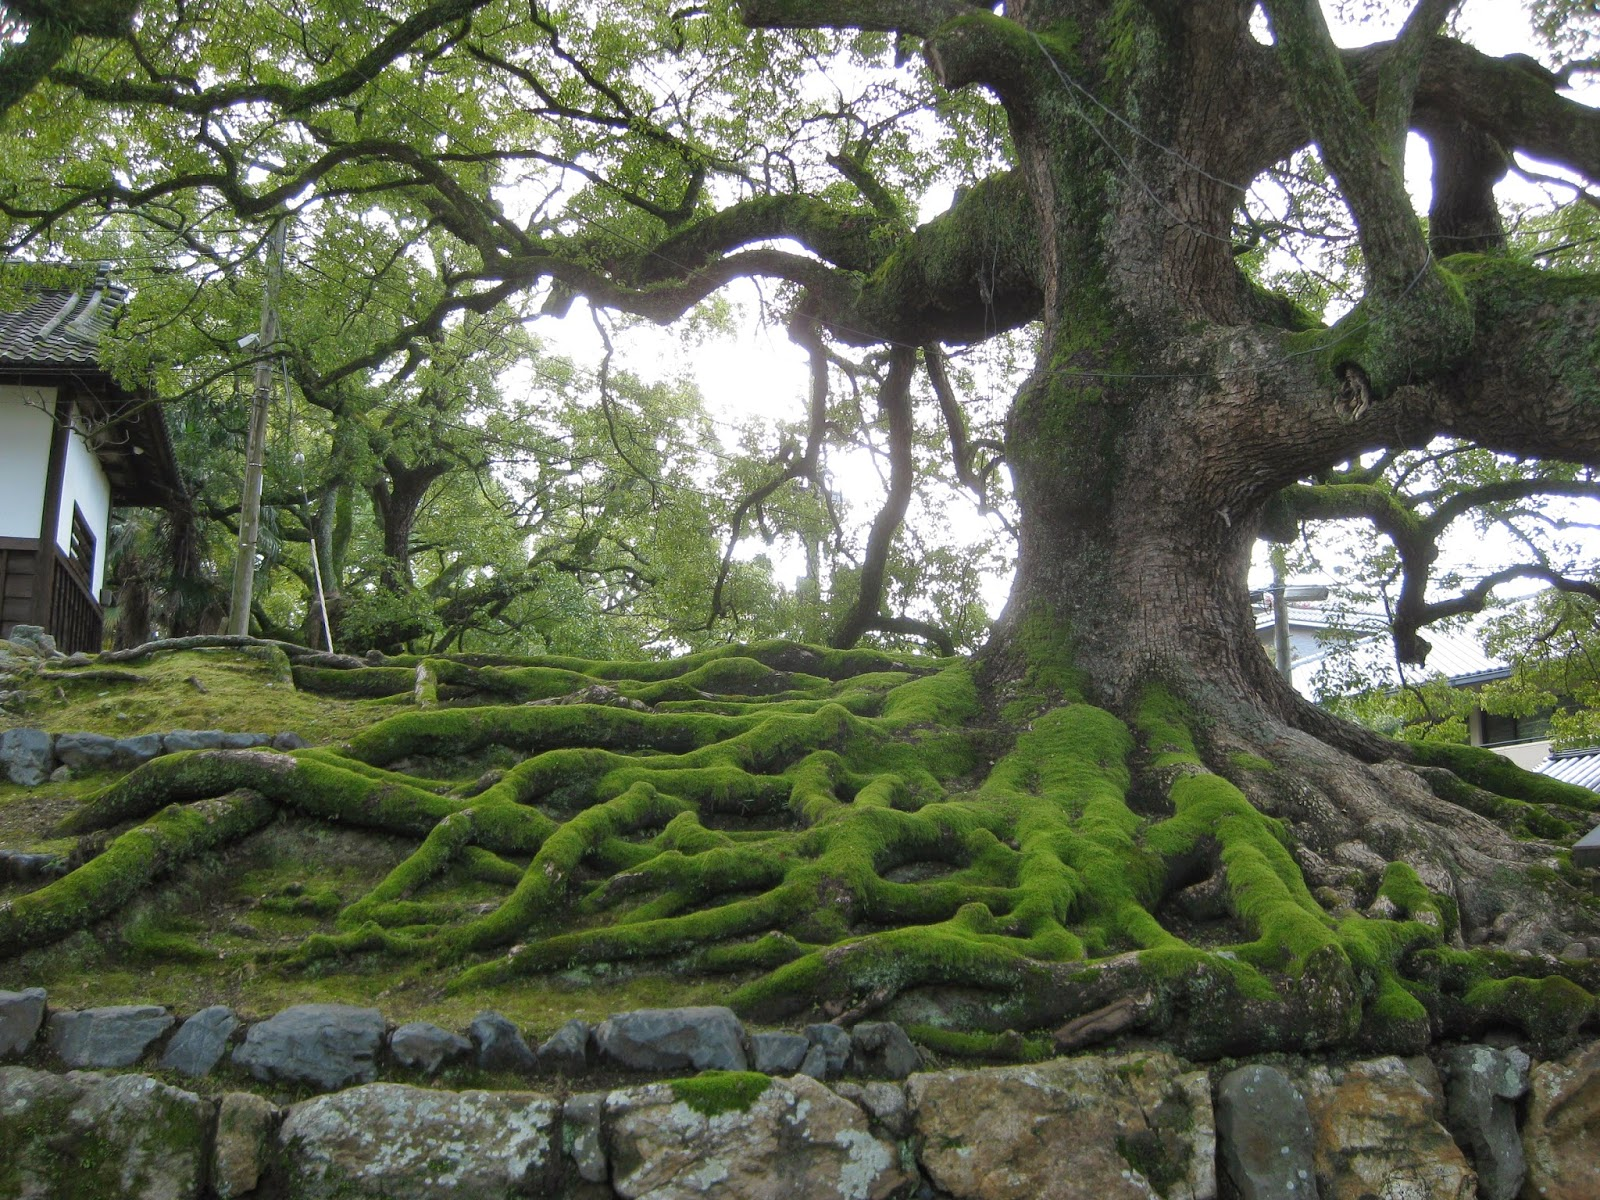 Kyoto - Cool tree and exposed roots at a temple